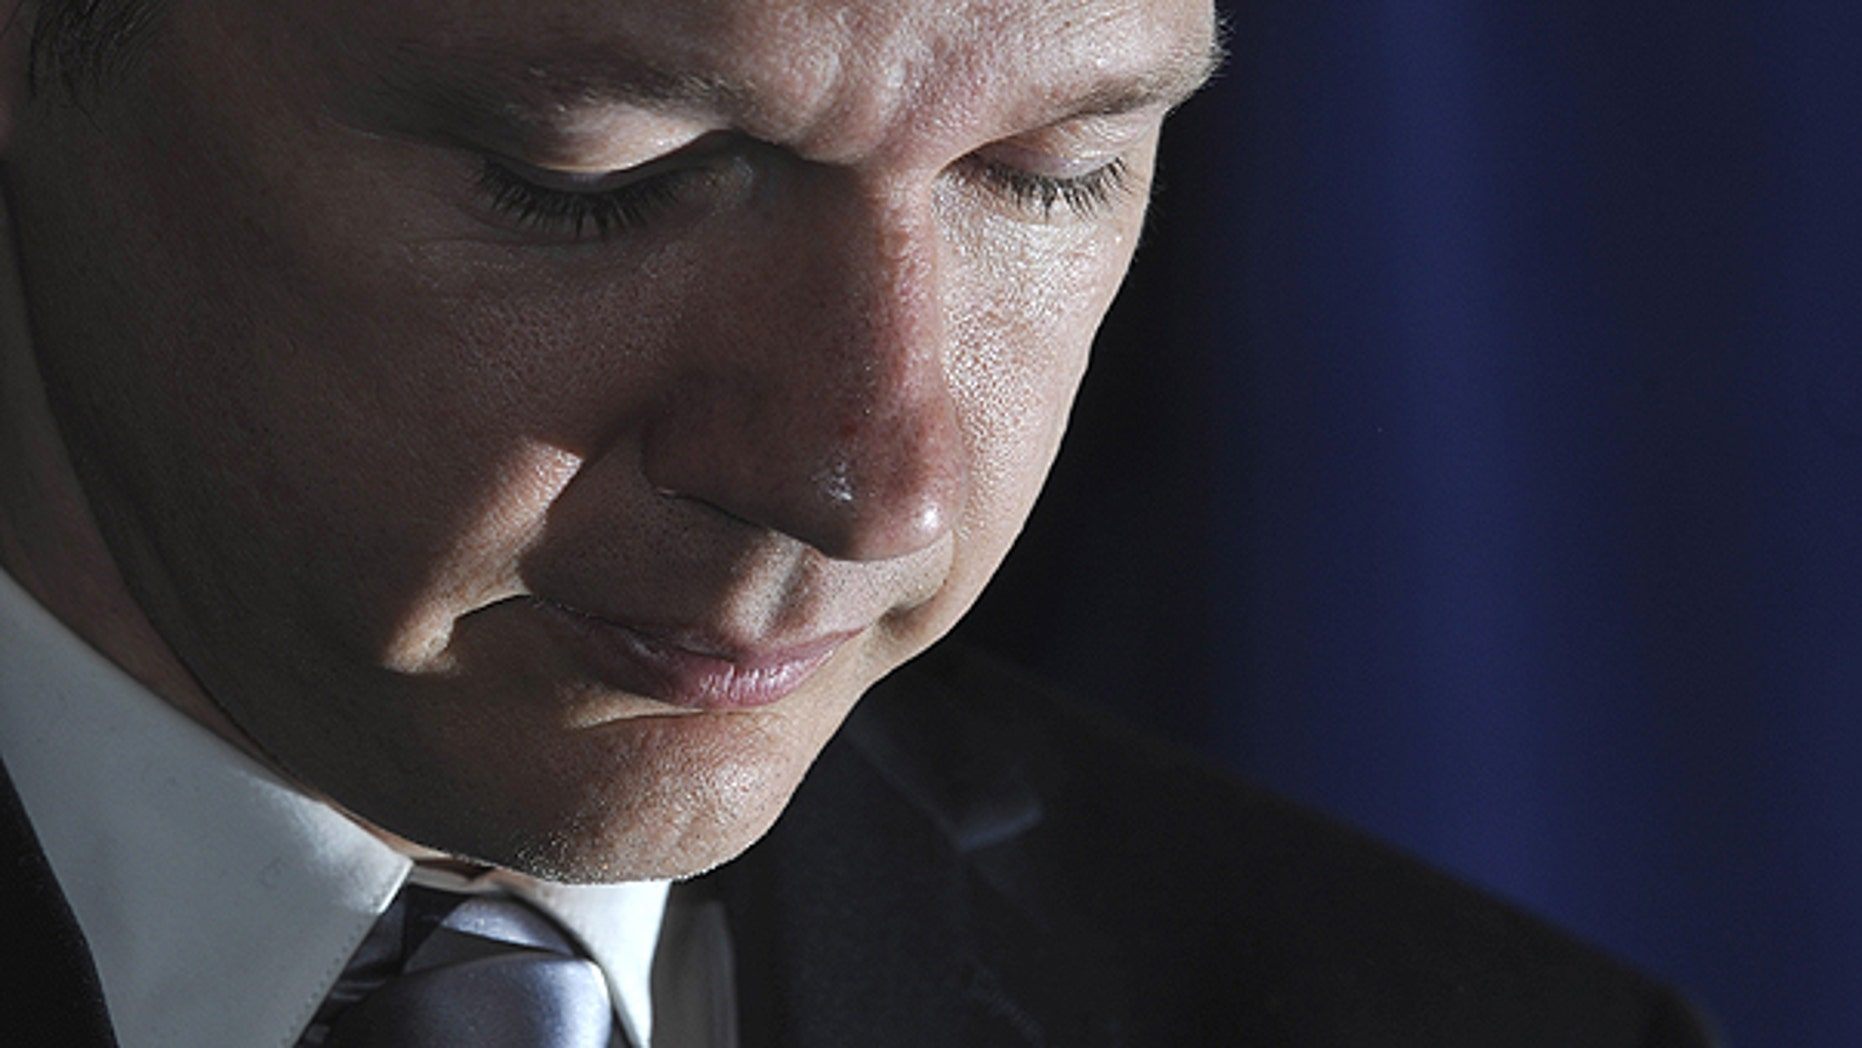 In this Oct. 23, 2010 file photo, WikiLeaks founder Julian Assange, speaks during a news conference in London.  (AP)